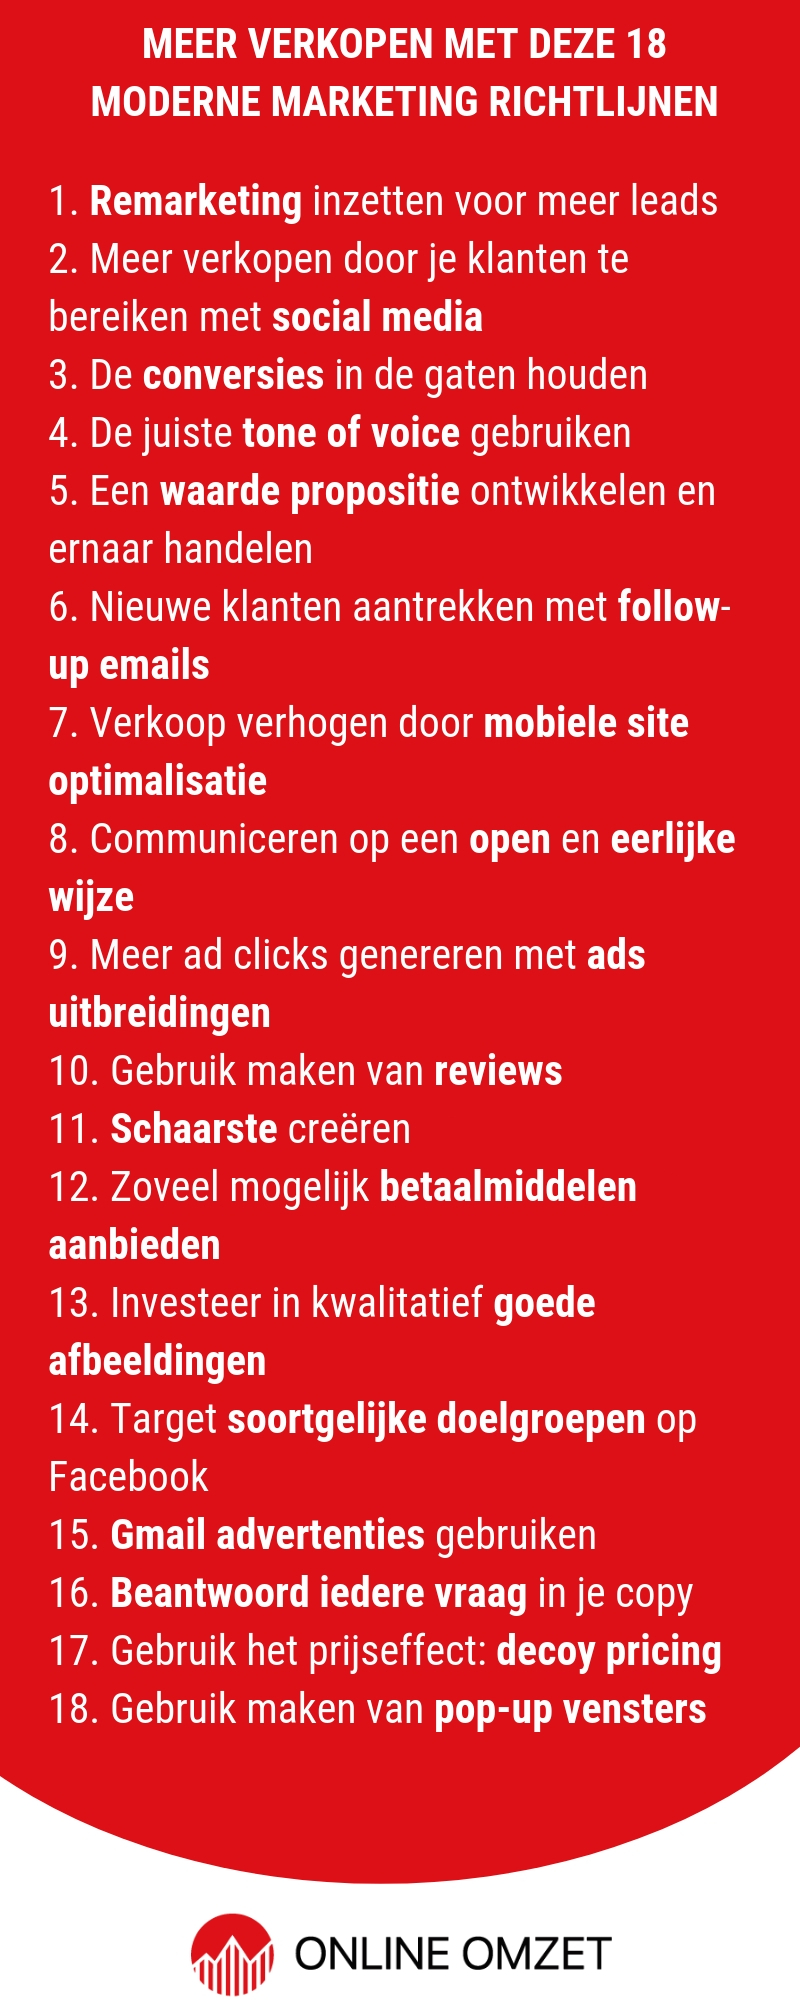 Meer verkopen met marketing tips - infographic